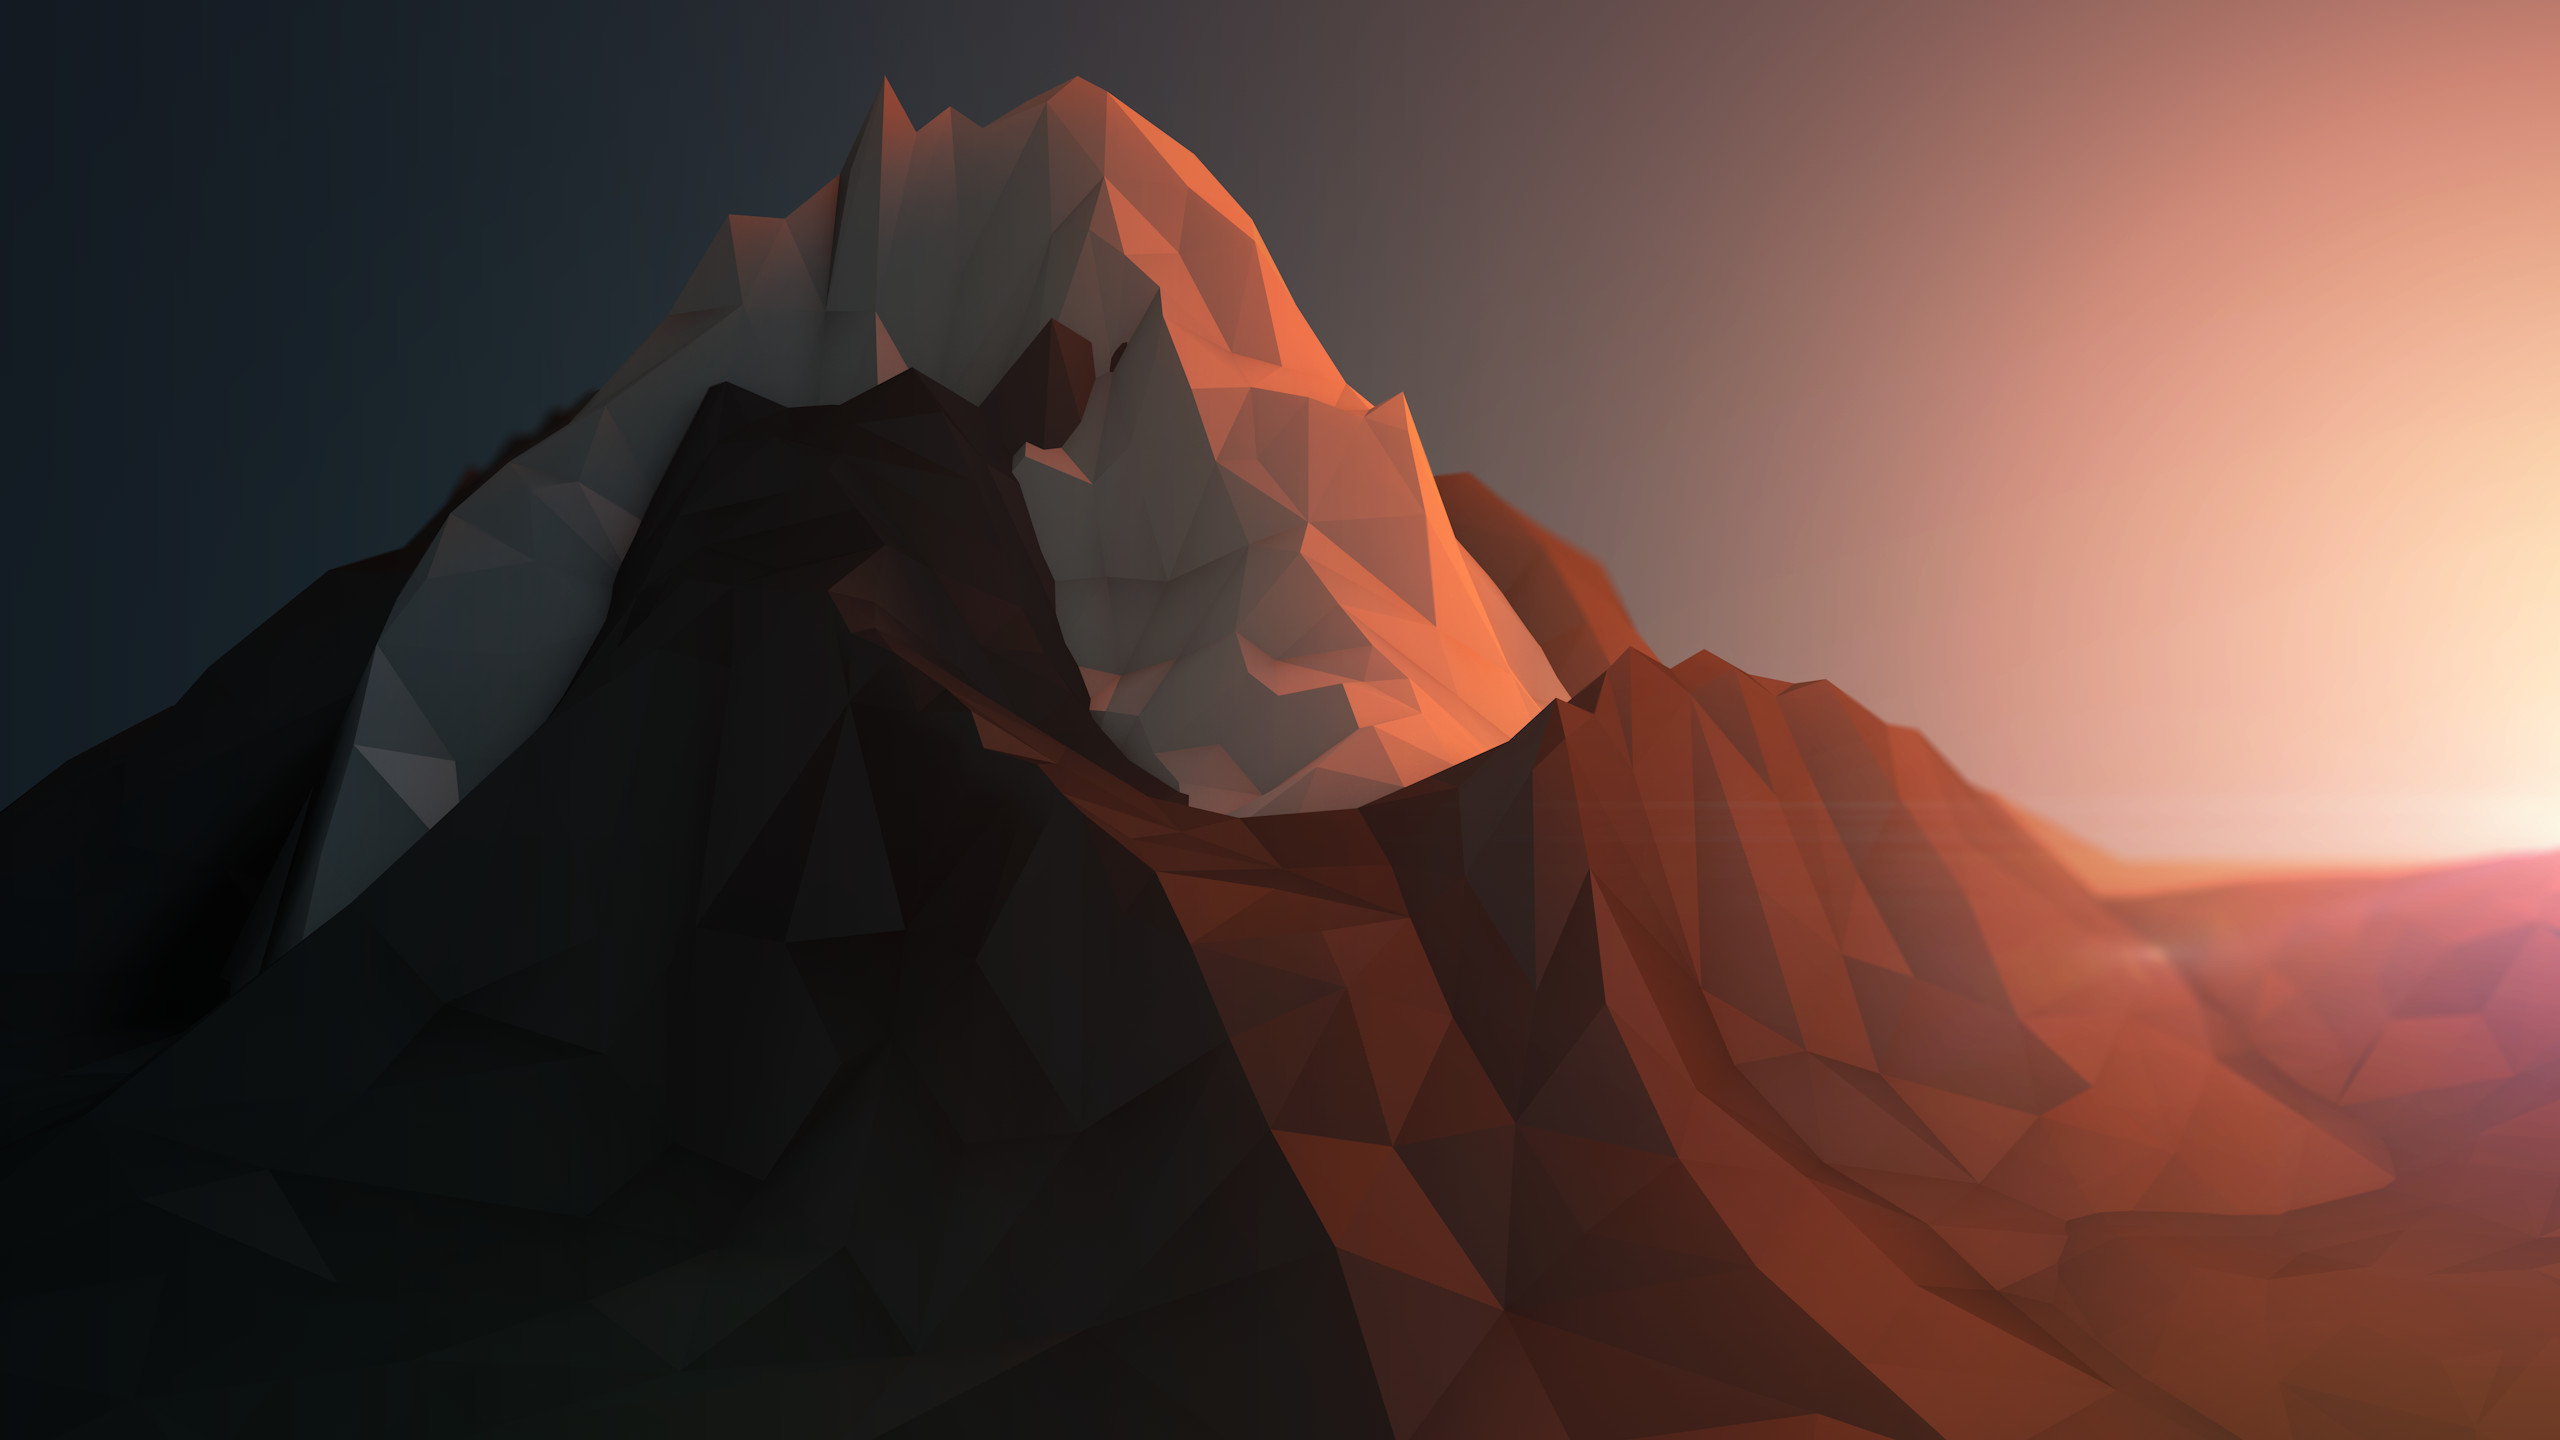 Low-poly mountains wallpaper, low polygons, geometric wallpaper, abstract,  geometry,